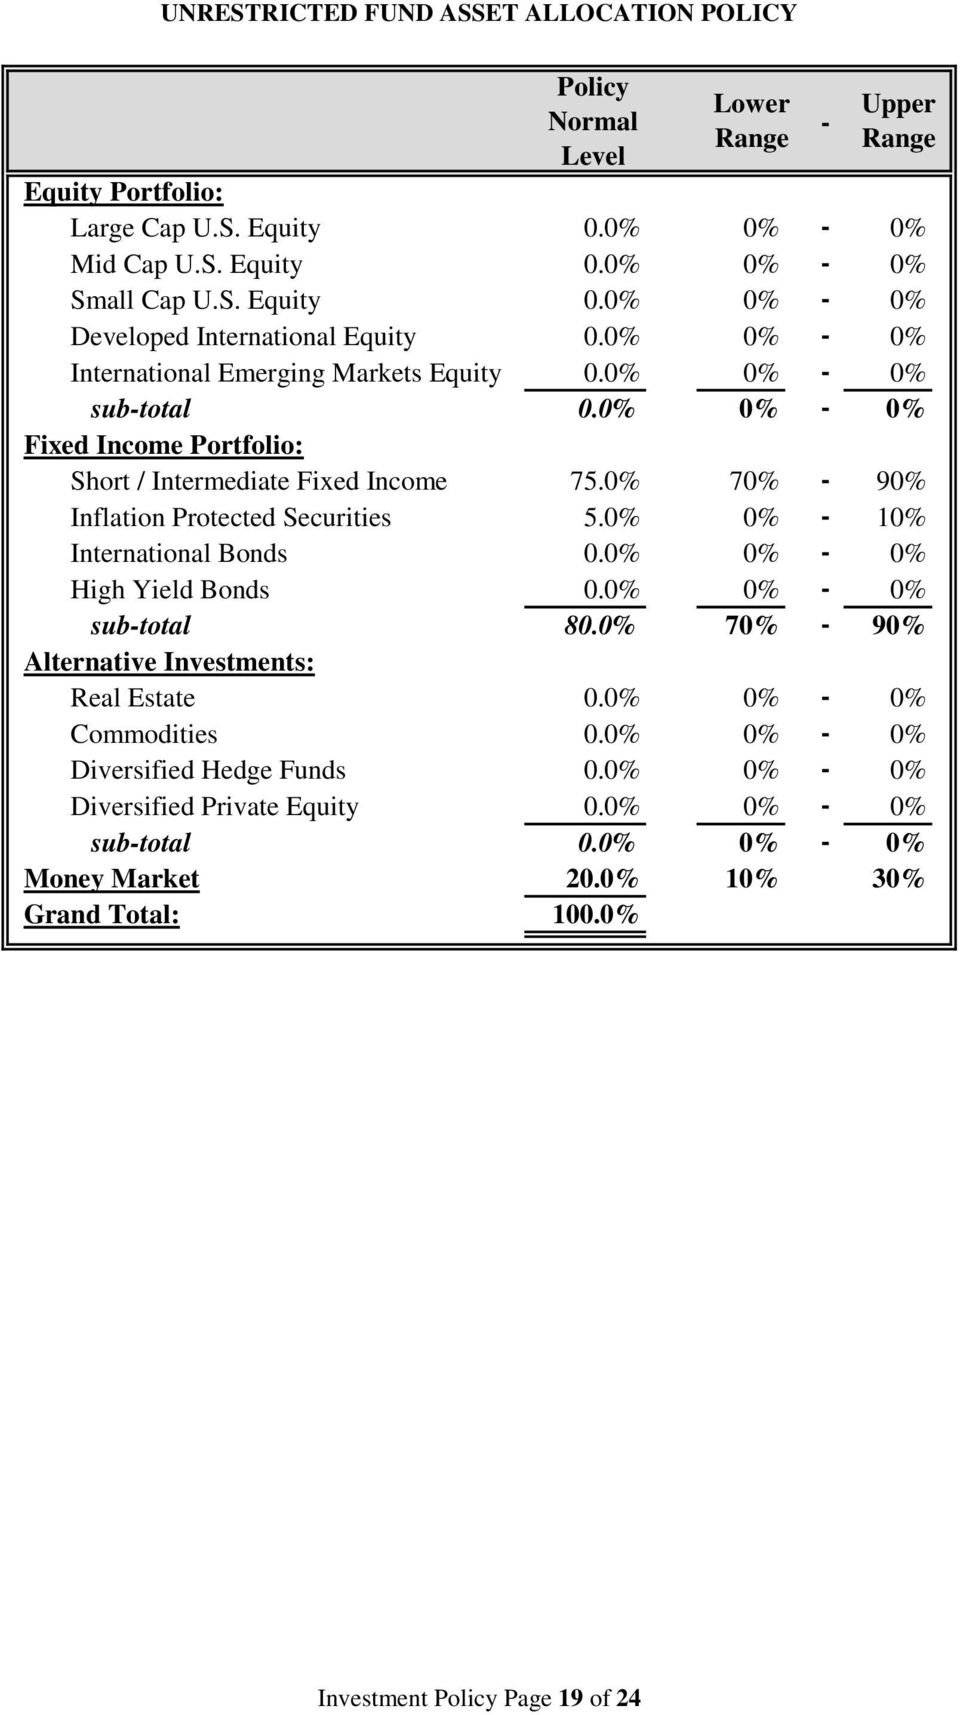 0% 0% - 10% International Bonds 0.0% 0% - 0% High Yield Bonds 0.0% 0% - 0% sub-total 80.0% 70% - 90% Alternative Investments: Real Estate 0.0% 0% - 0% Commodities 0.